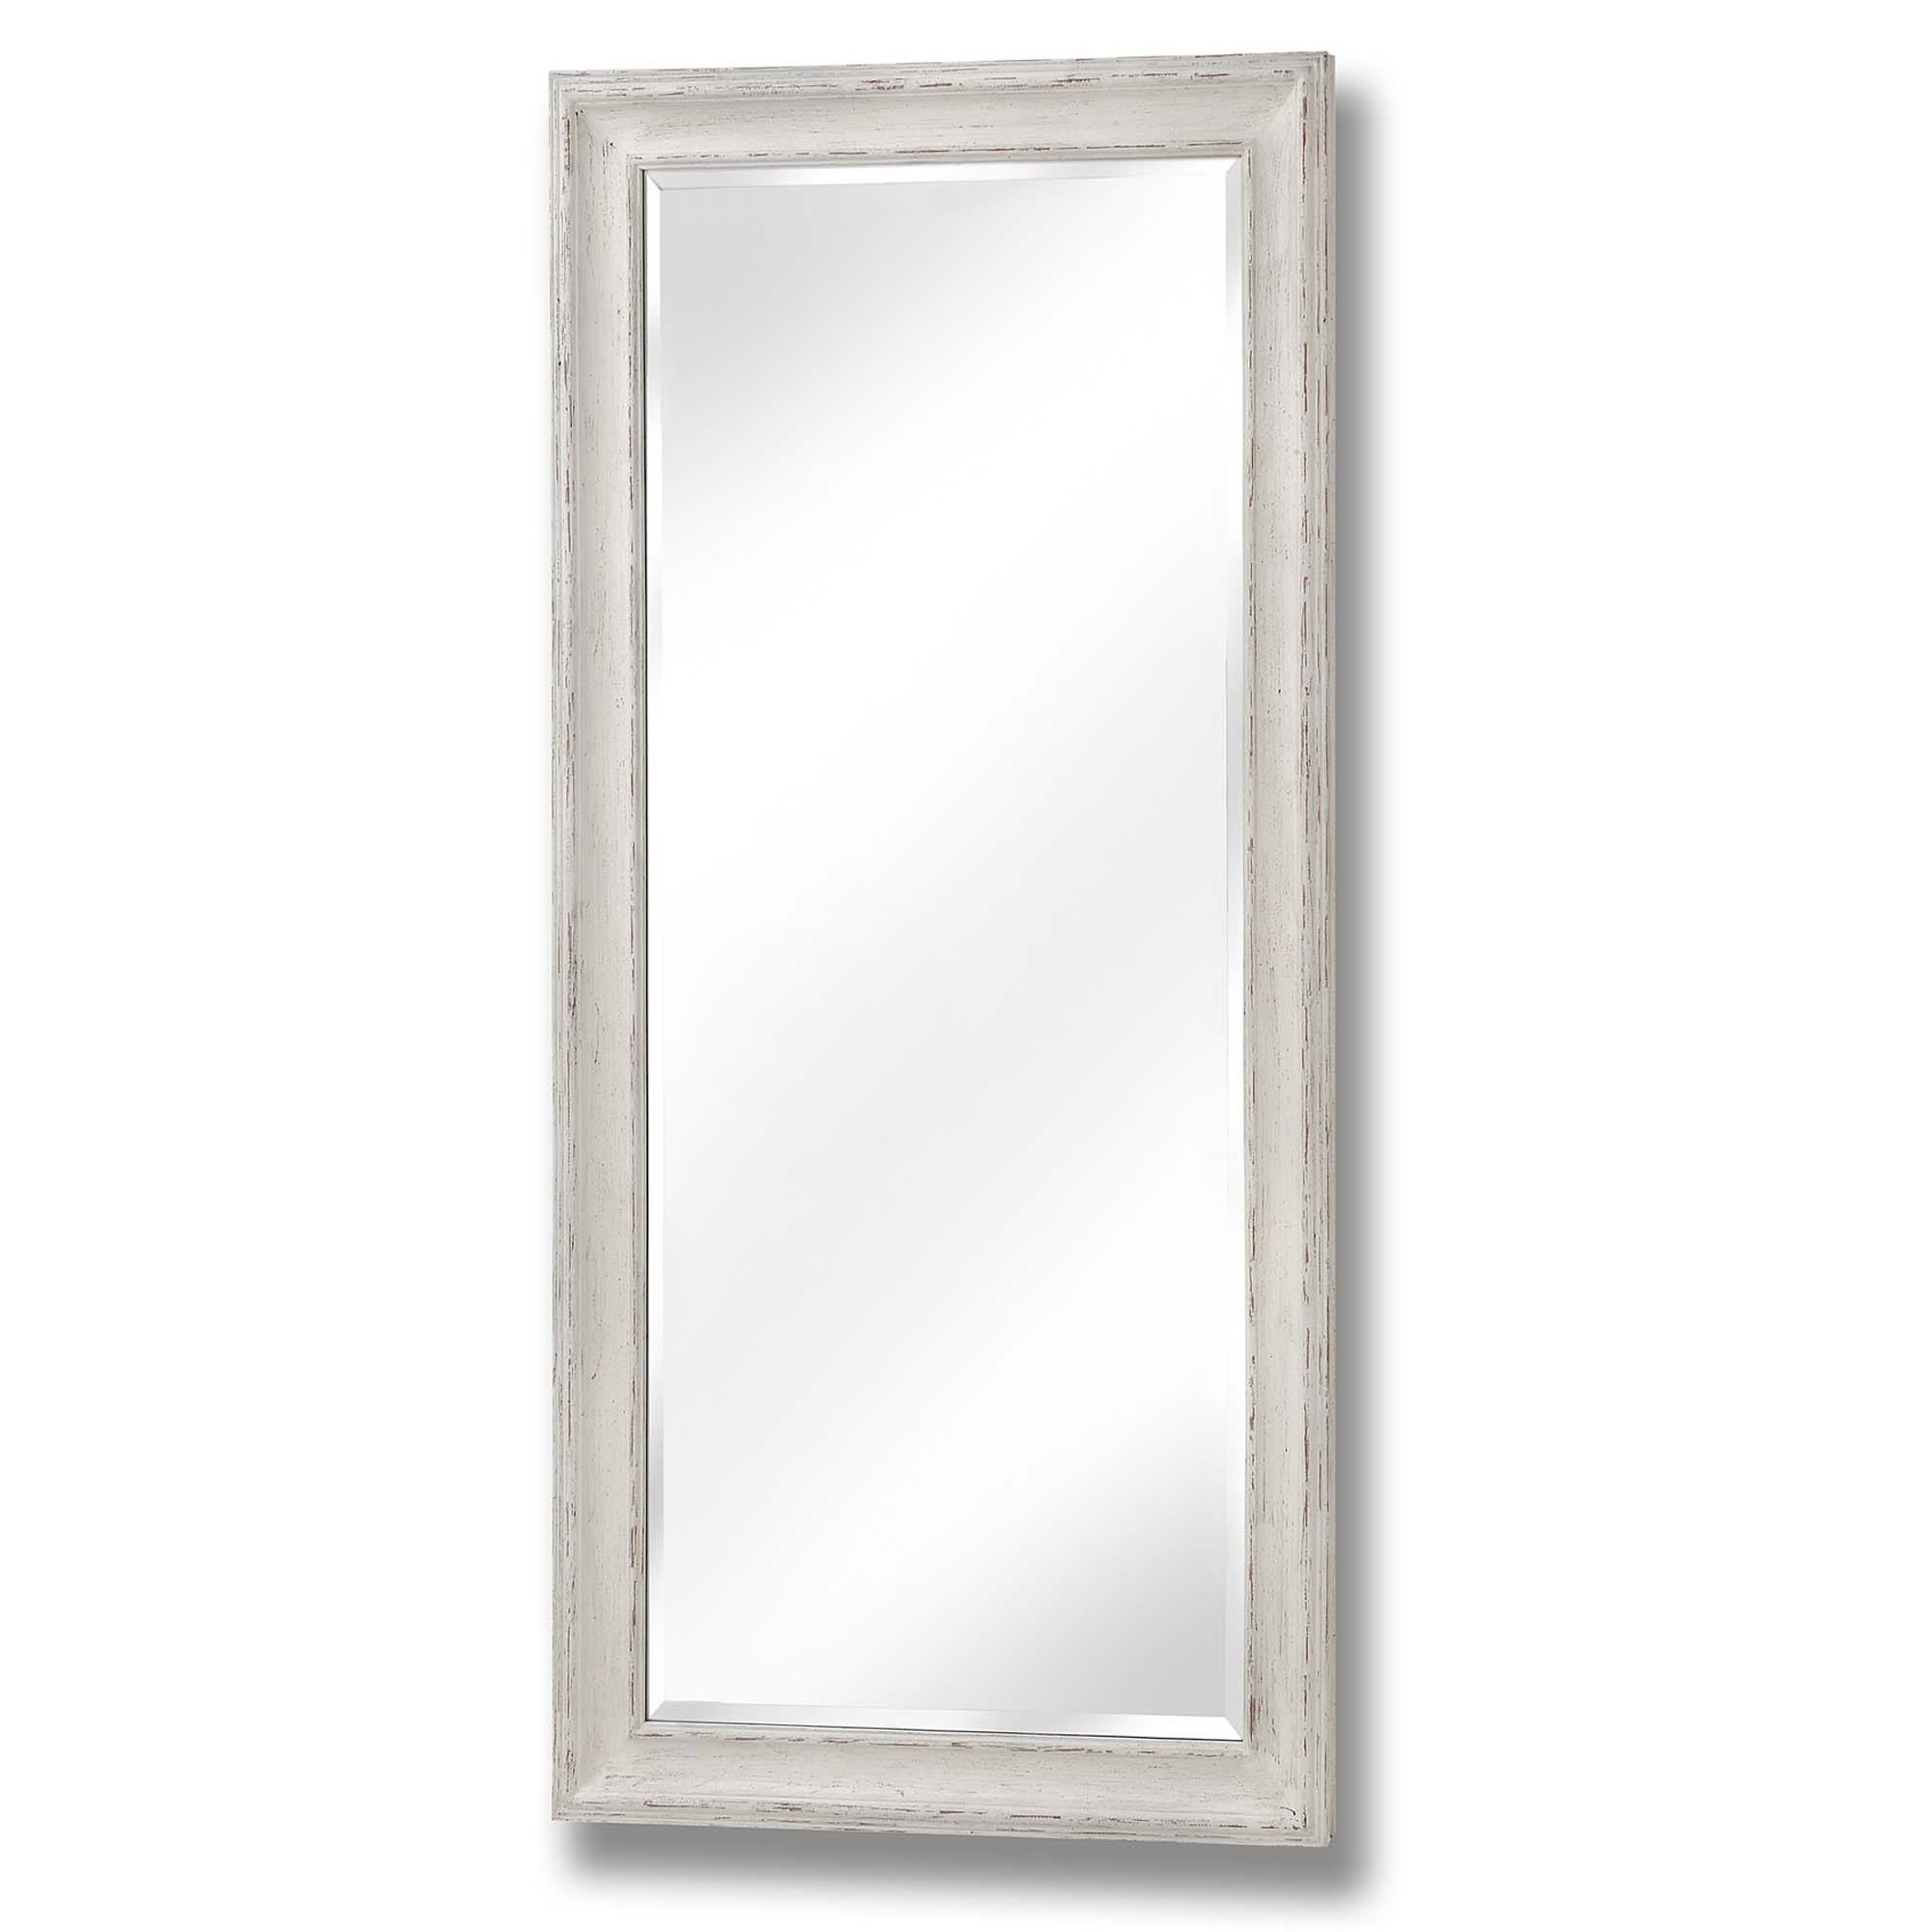 Antique White Large Rectangular Wall Mirror Homesdirect365